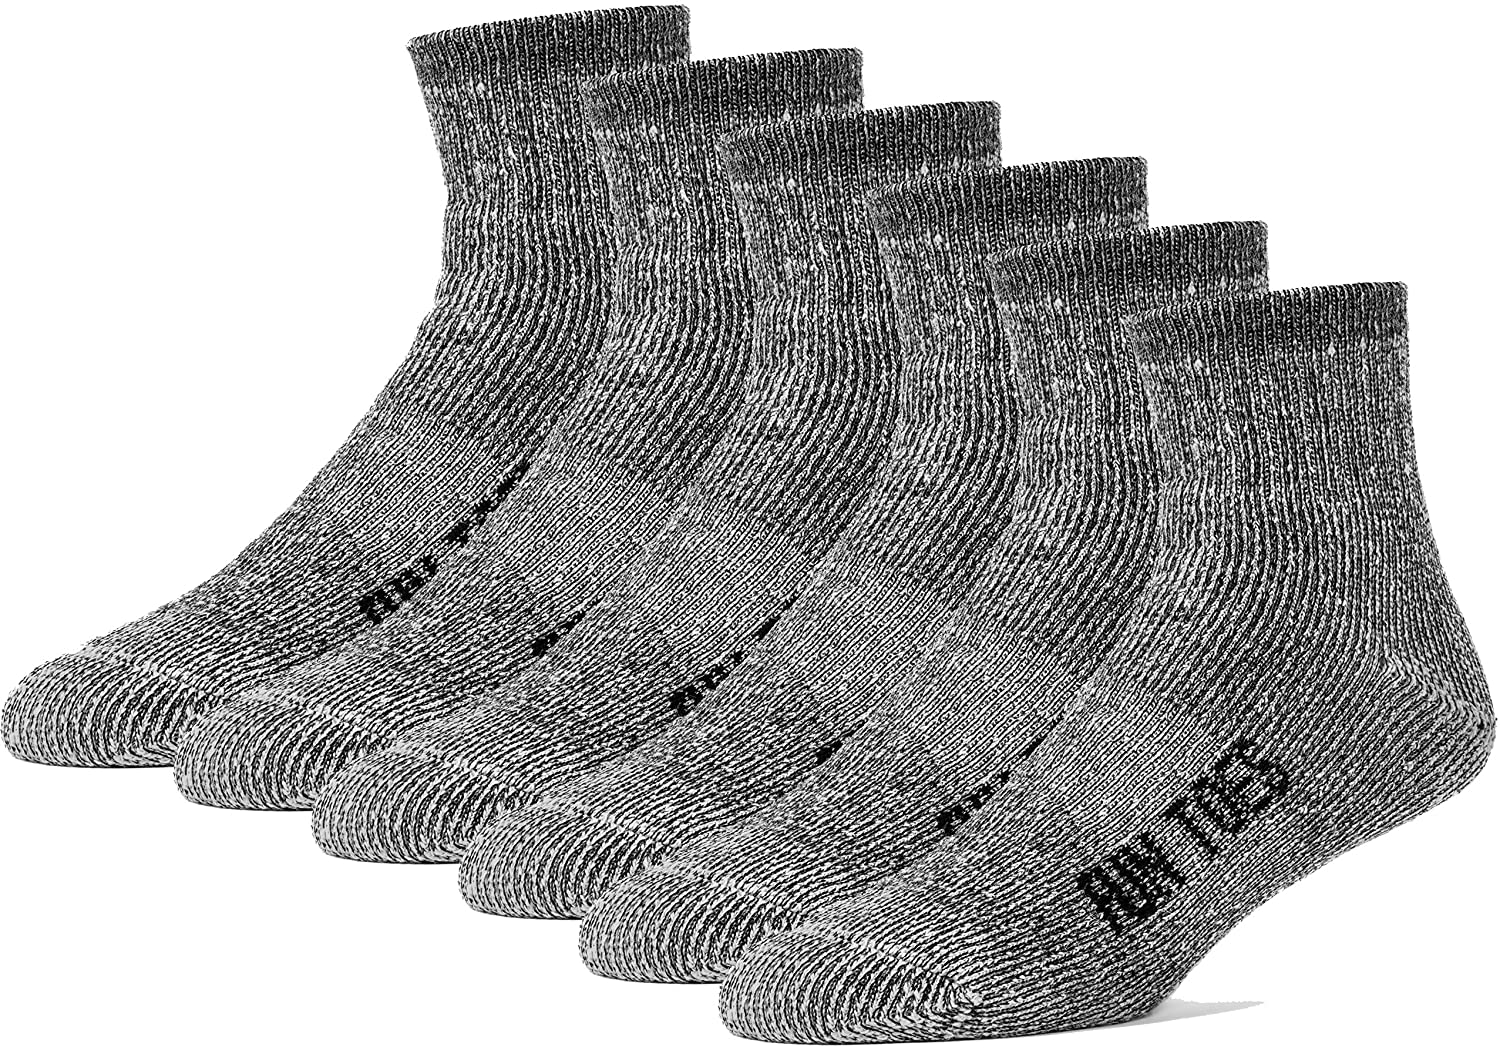 FUN TOES Merino Wool Ankle Socks Pack of 6 Arch Support and Cushioning Heel to Toe Reinforcement Ideal for Hiking